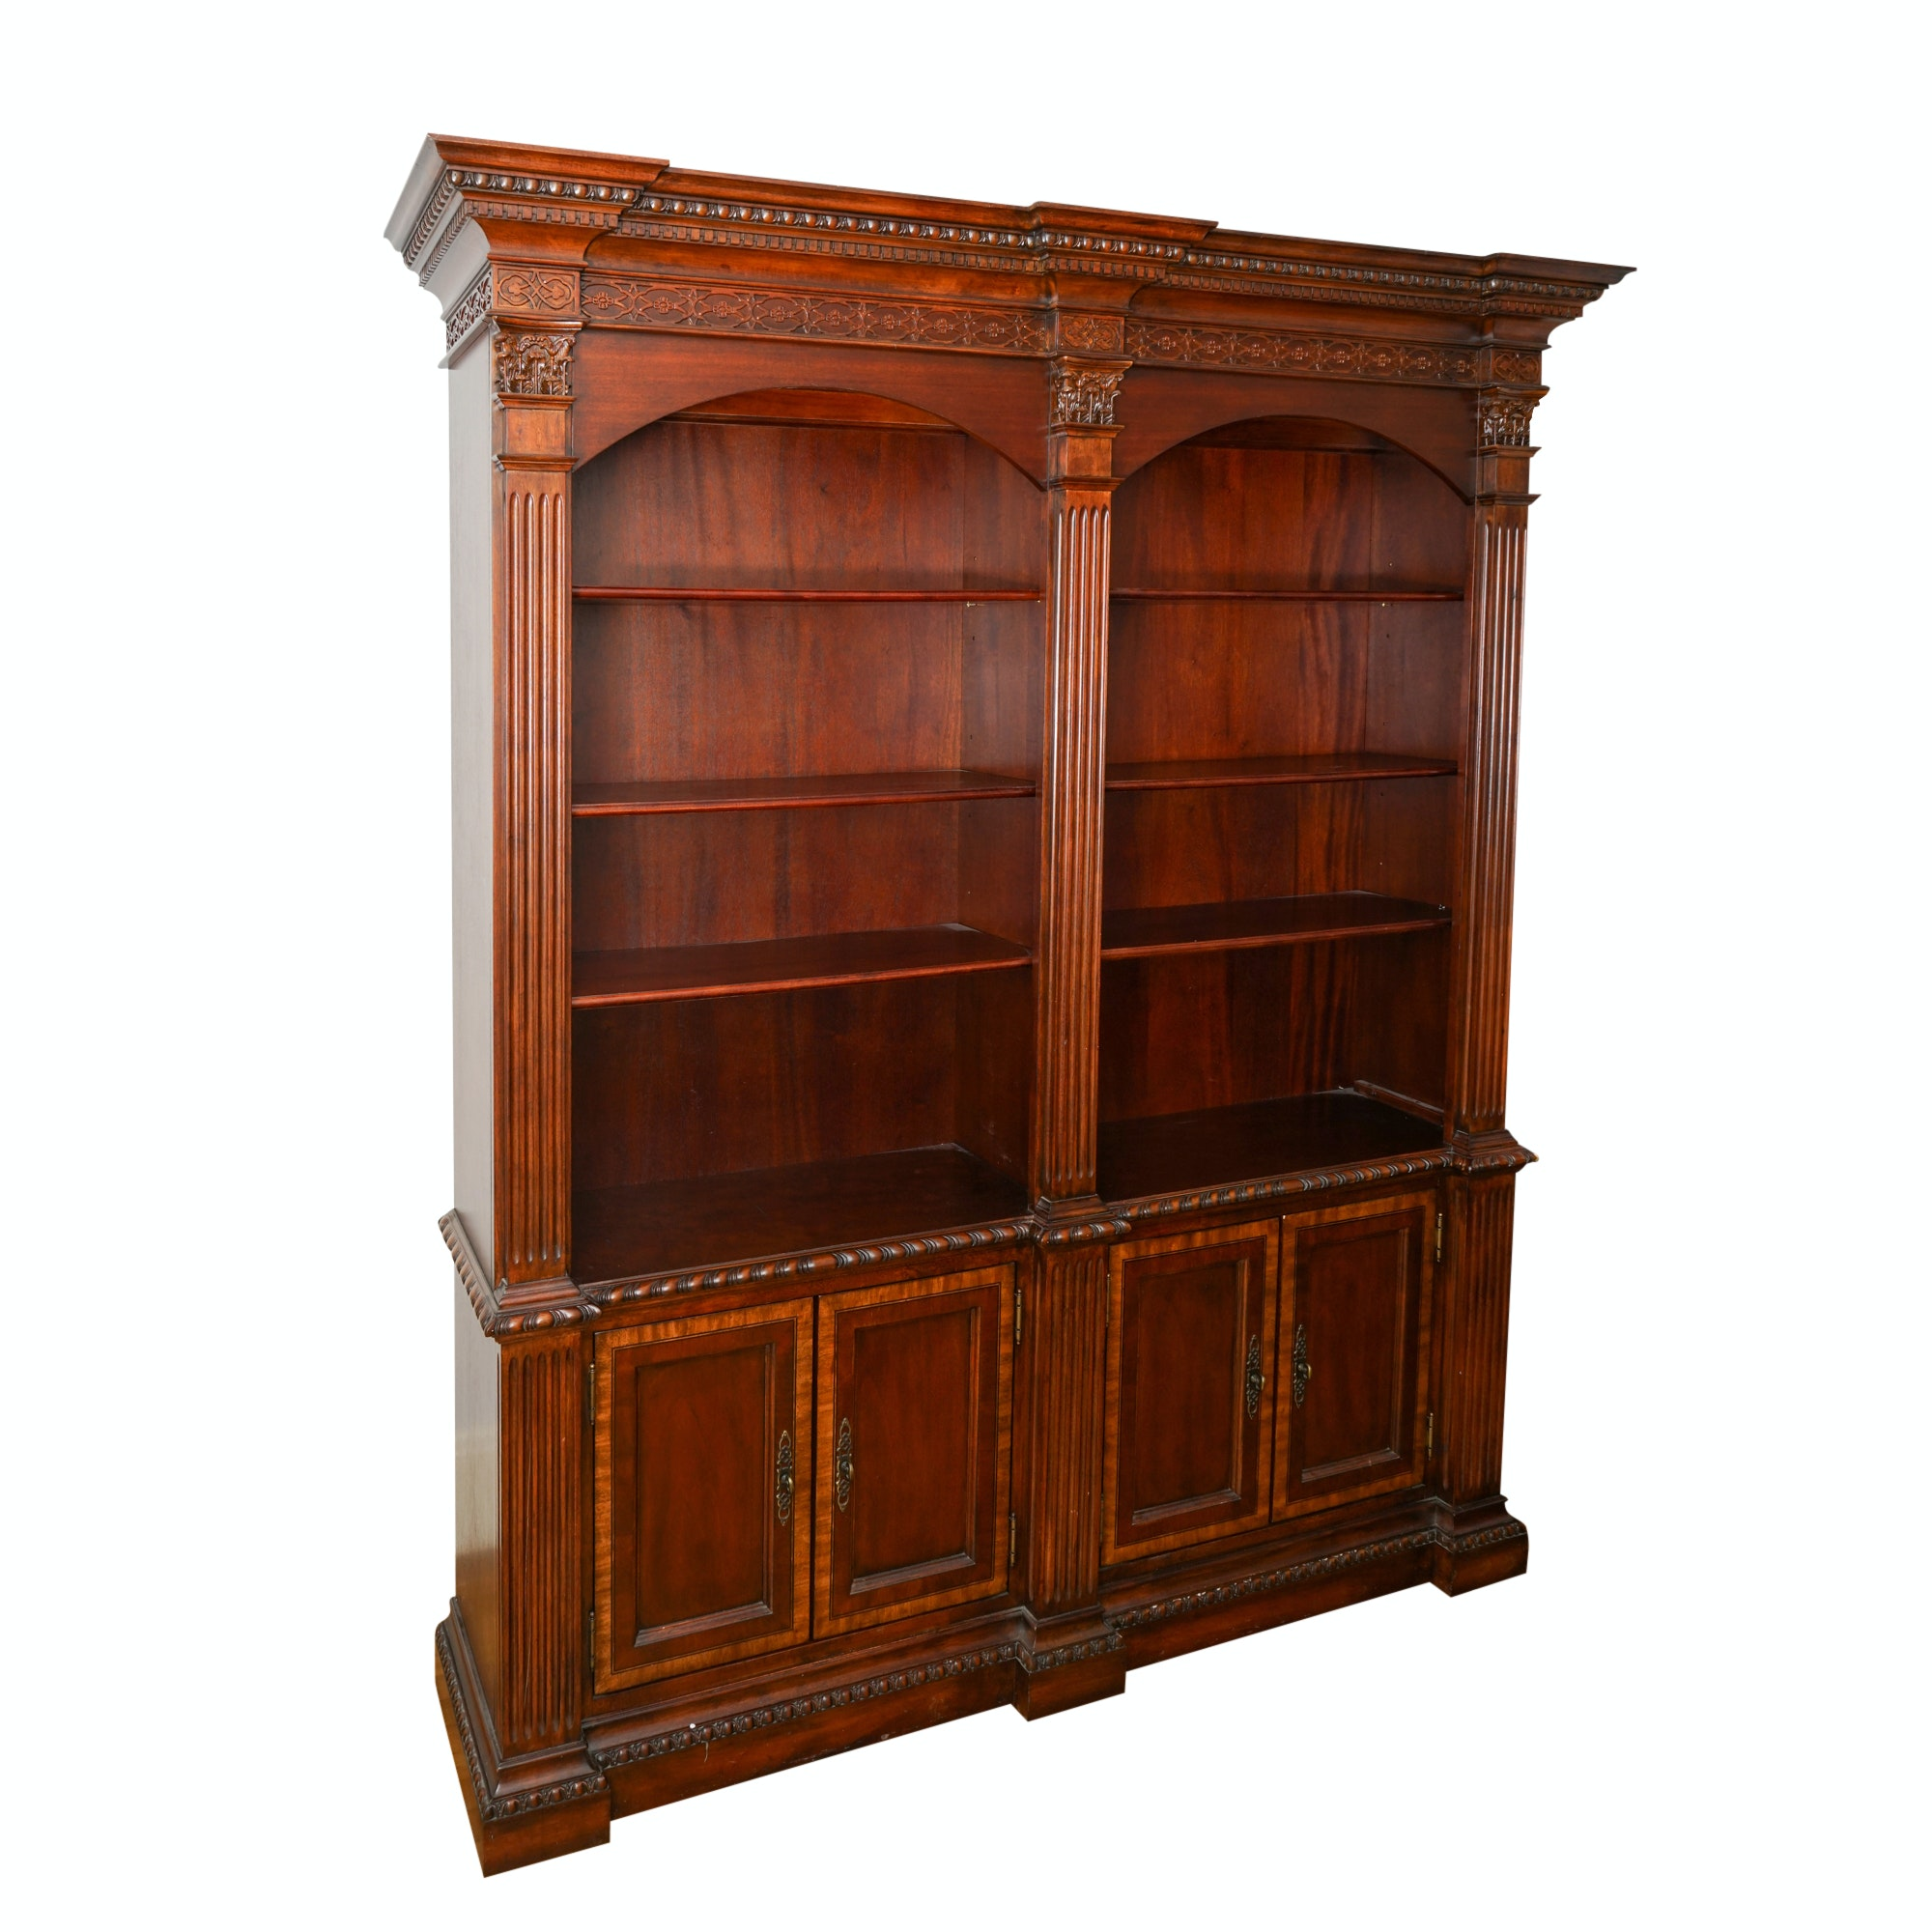 Contemporary Neoclassical Style Mahogany-Finished Bookcase